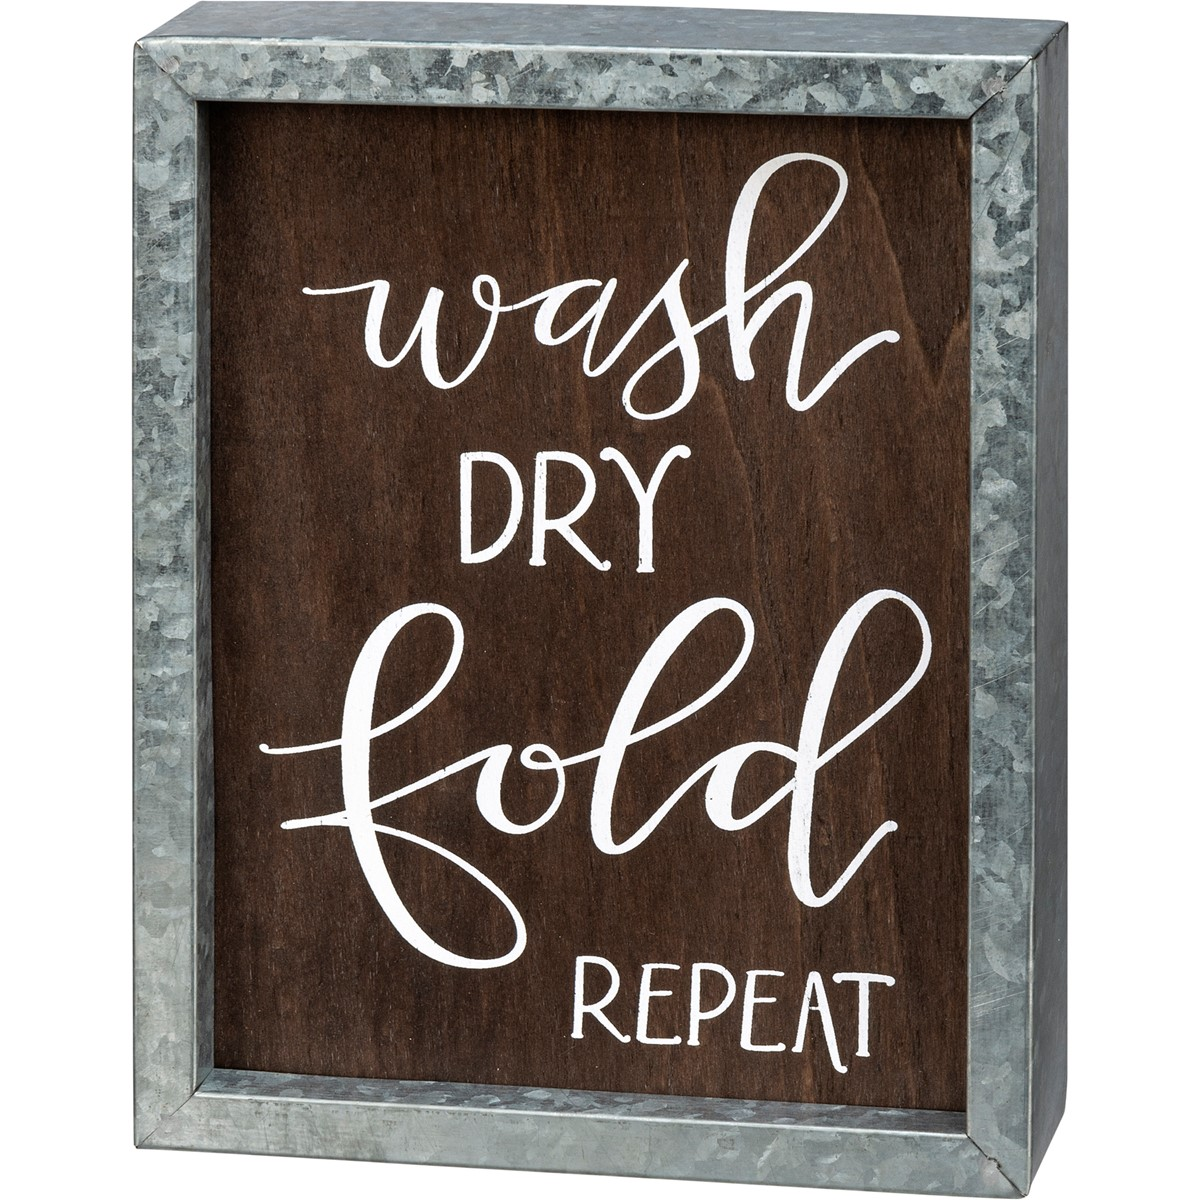 "Inset Box Sign - Wash Dry Fold Repeat - 7"" x 9"" x 1.75"" - Wood, Metal"